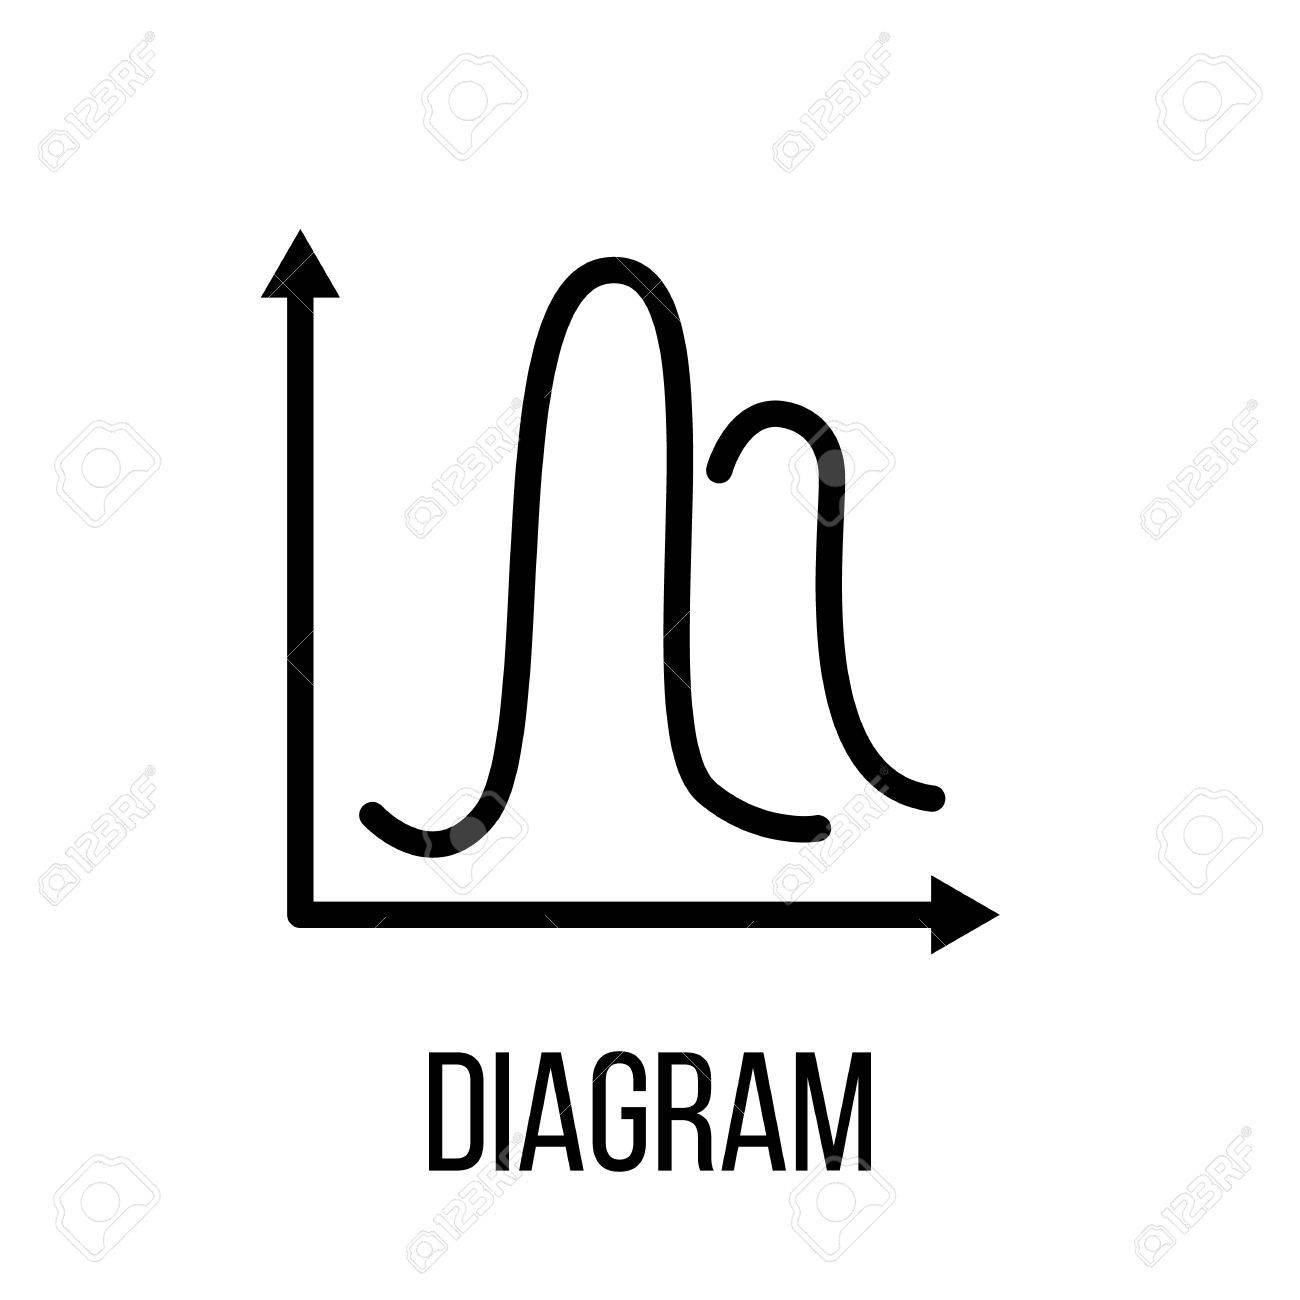 hight resolution of diagram icon in modern line style high quality black outline pictogram for web site design